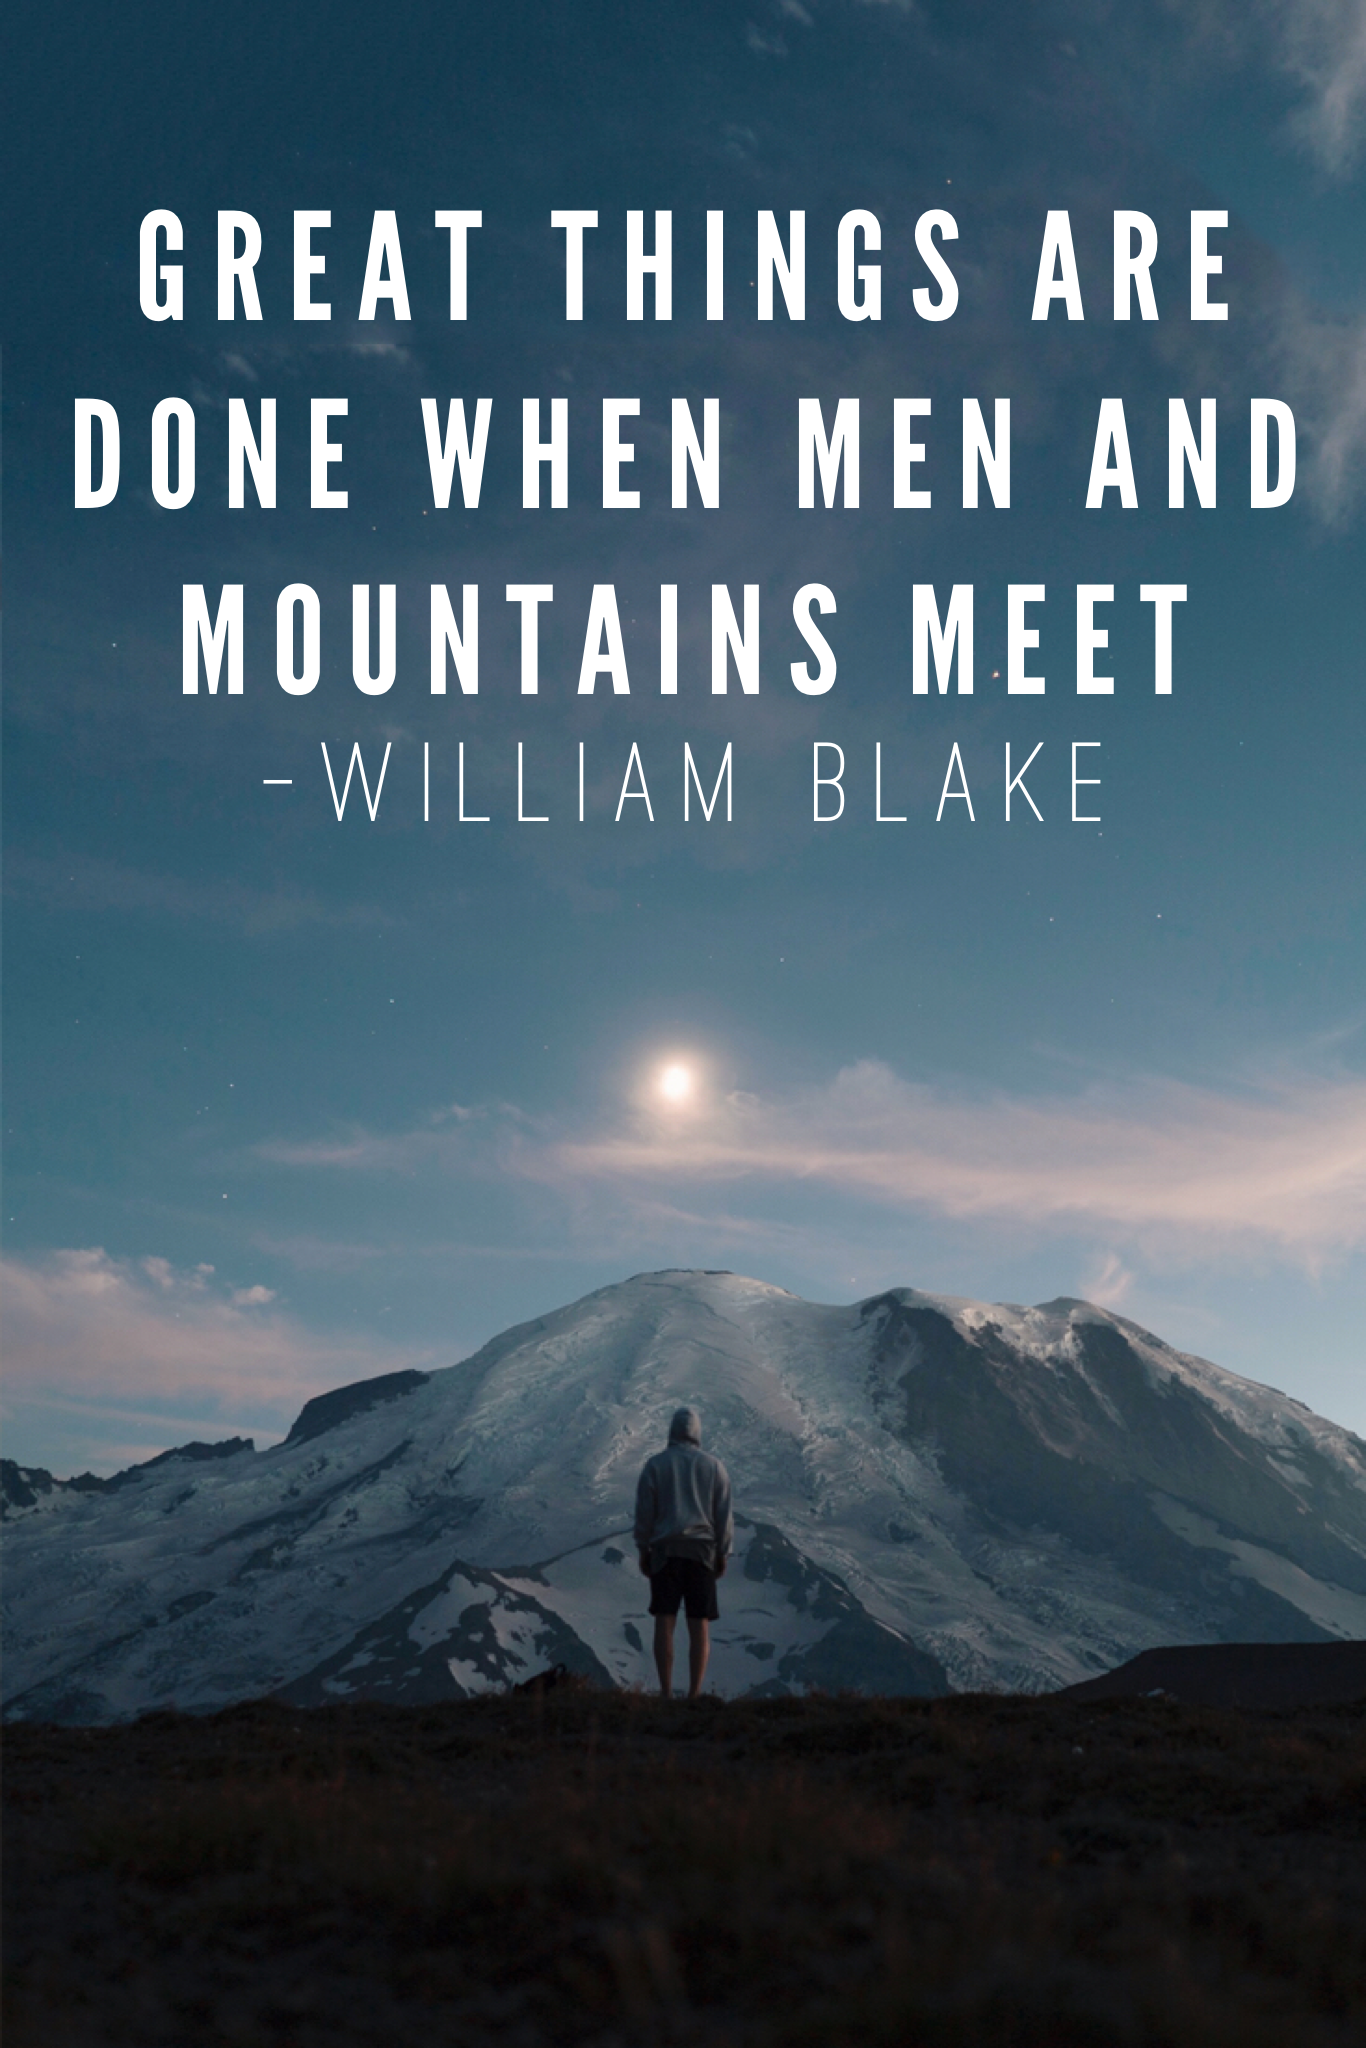 5 Of Our All Time Favorite Outdoor Adventure Quotes Outdoor Adventure Quotes Adventure Quotes Outdoor Quotes